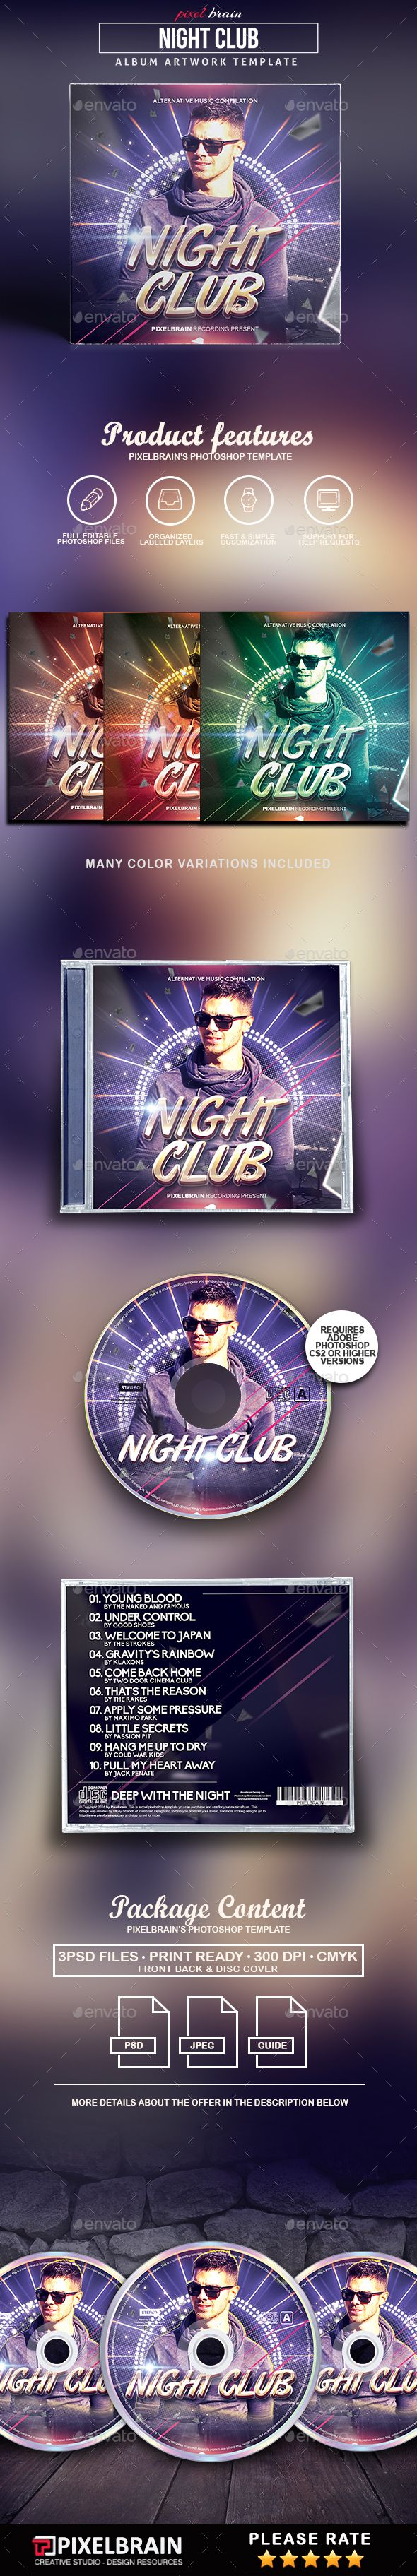 Night Club CD Cover Artwork - #CD & DVD #Artwork Print #Templates Download here: https://graphicriver.net/item/night-club-cd-cover-artwork/19540691?ref=alena994